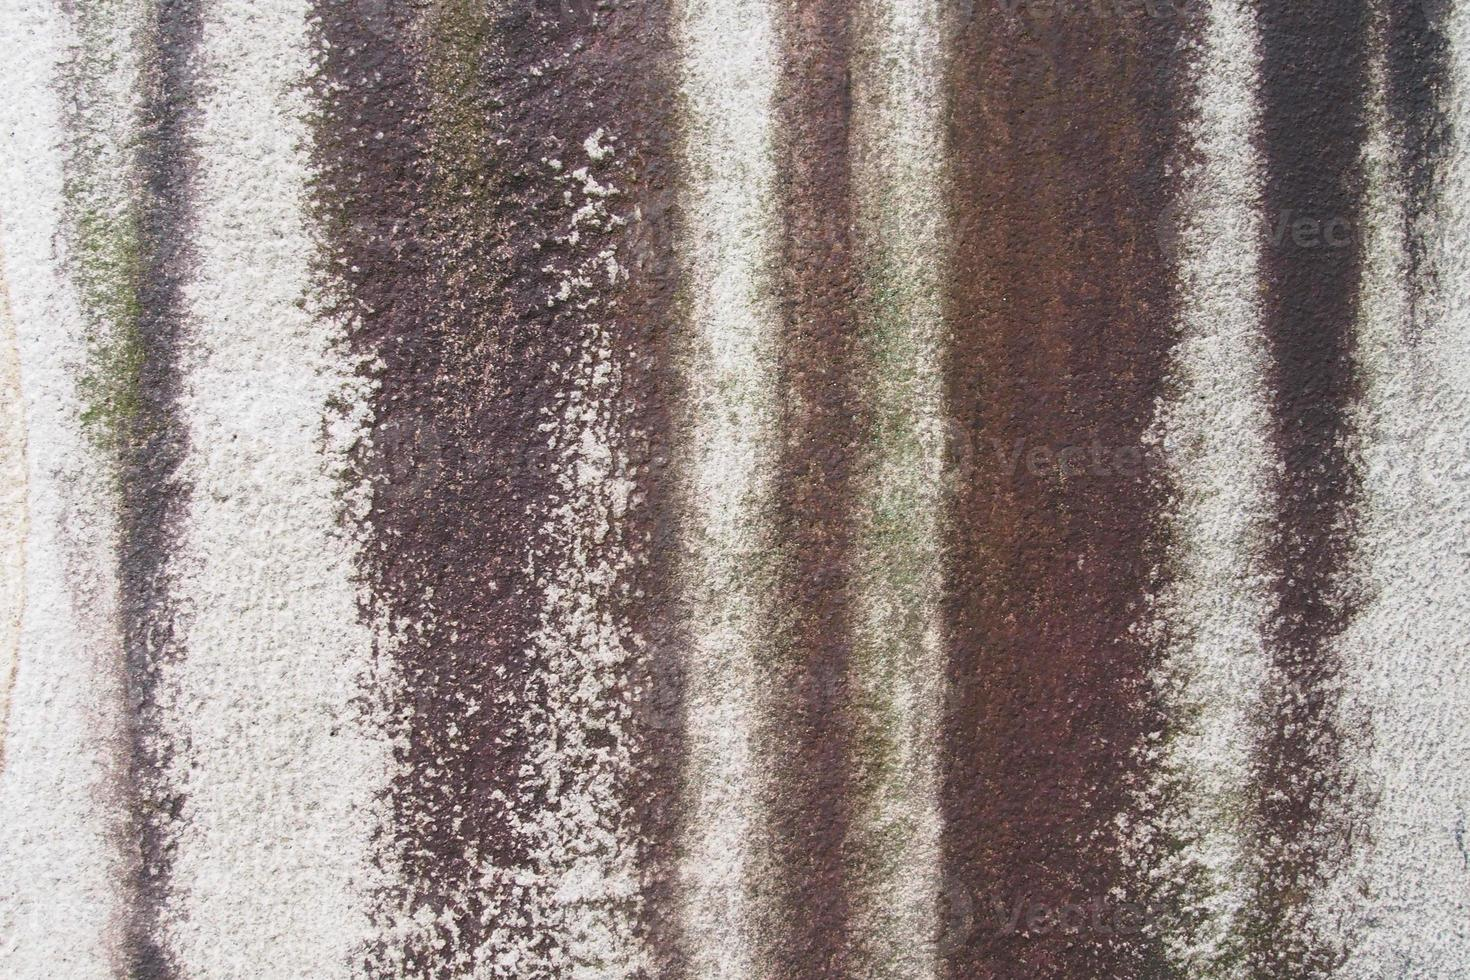 Stained on stone wall photo